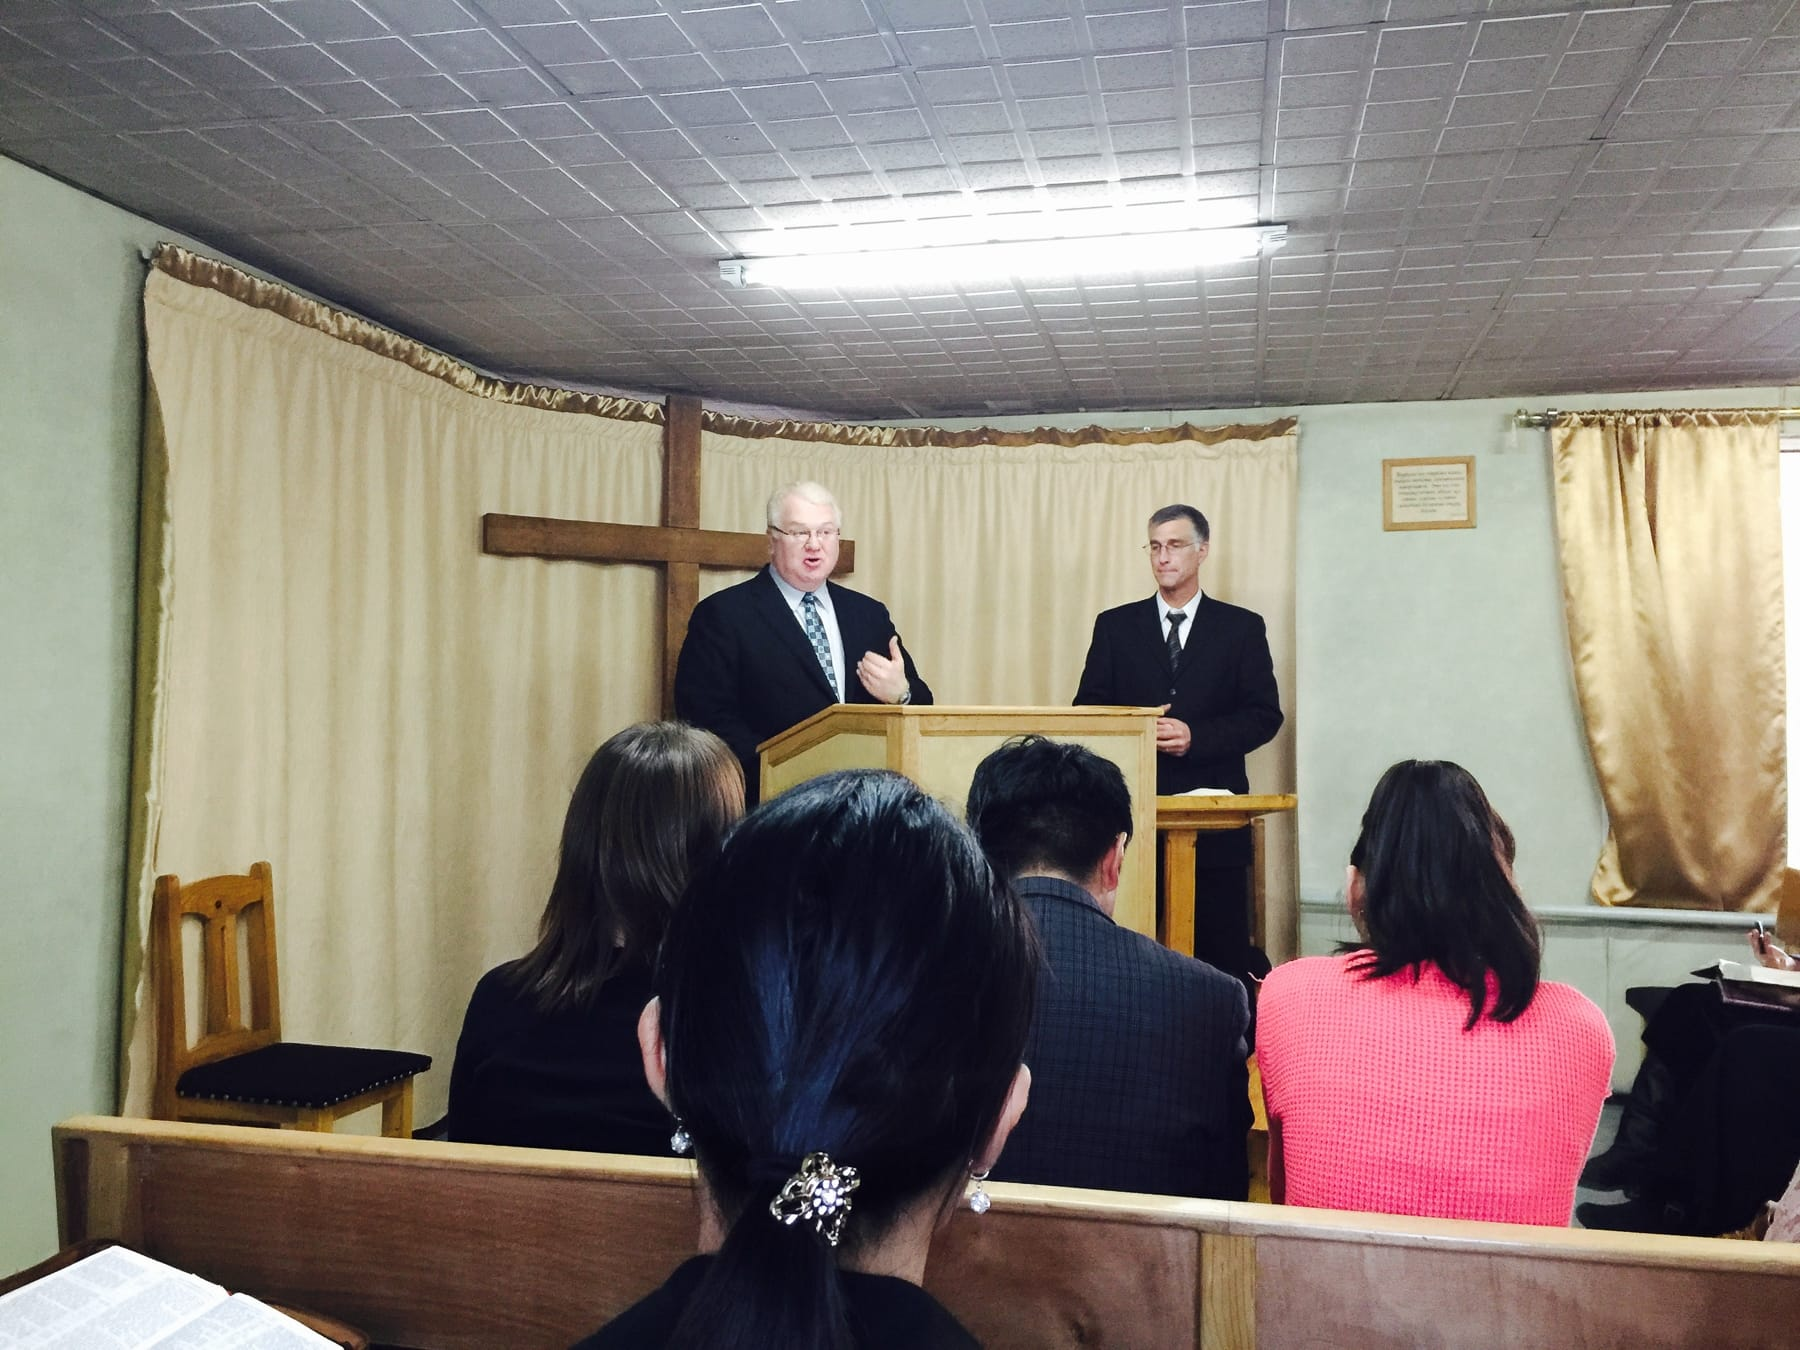 Fairhaven Baptist Church Mongolia (2 of 7)